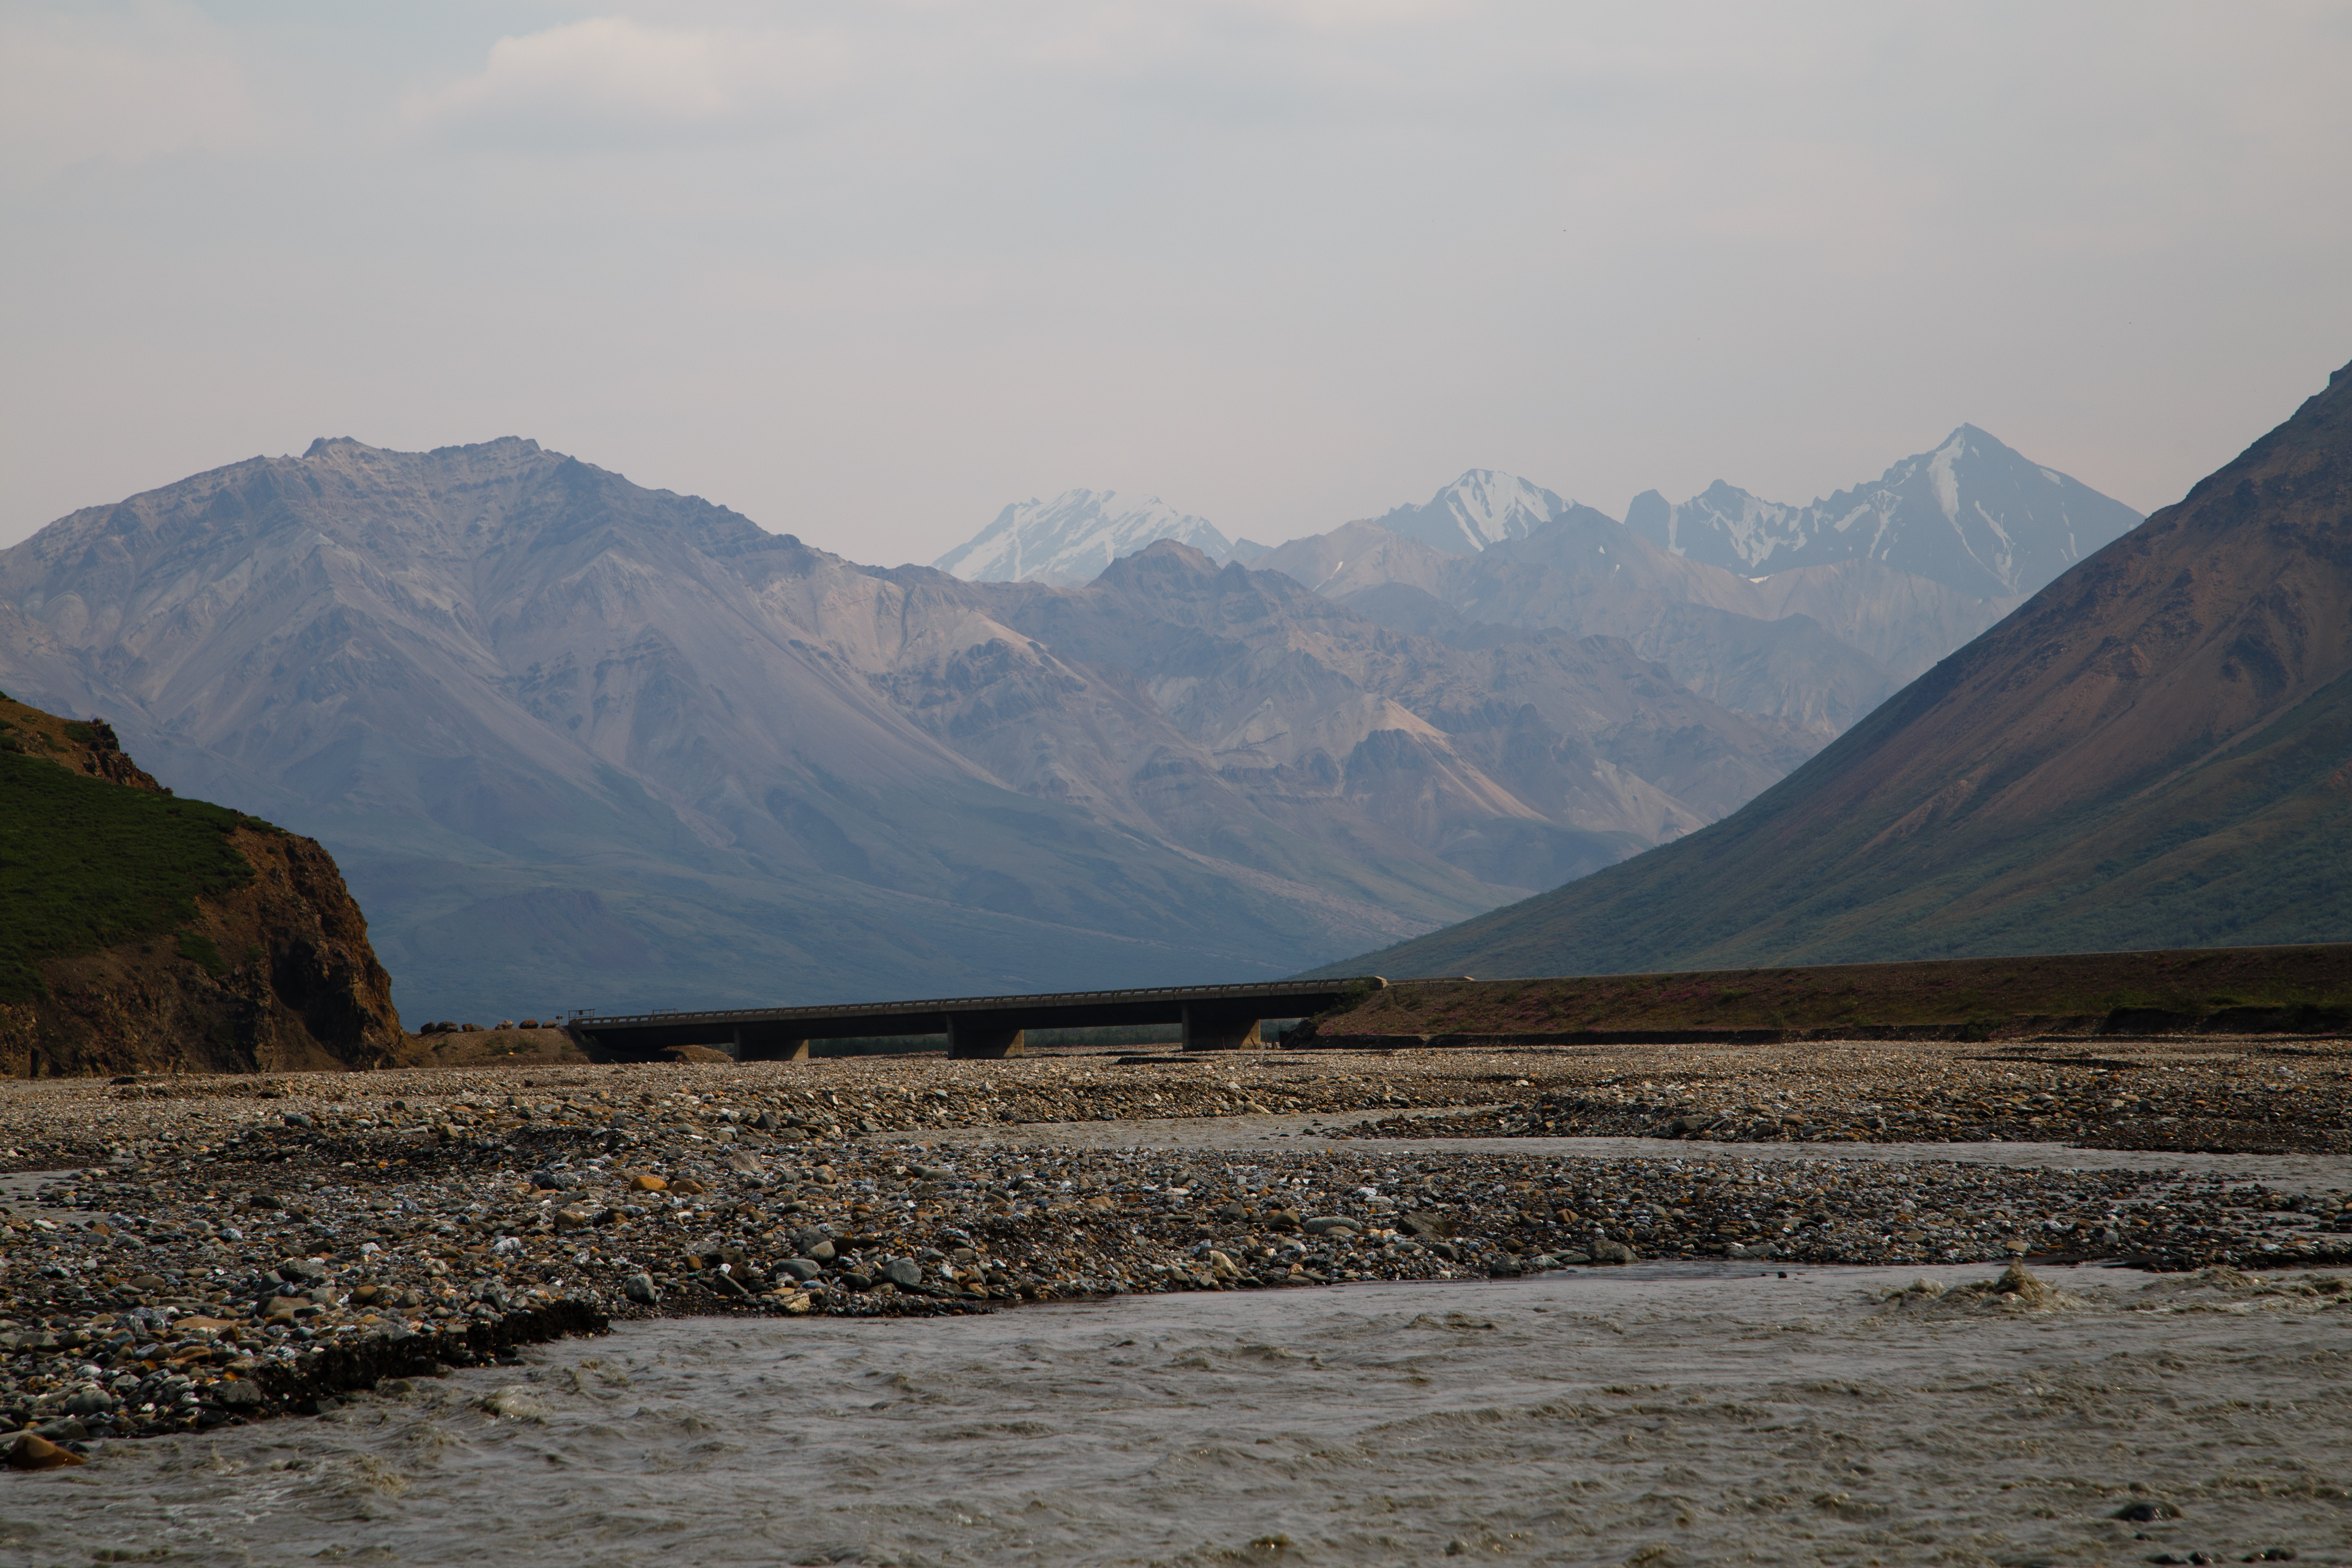 Day 3 - Bus to Eielson - IMG_2862.jpg